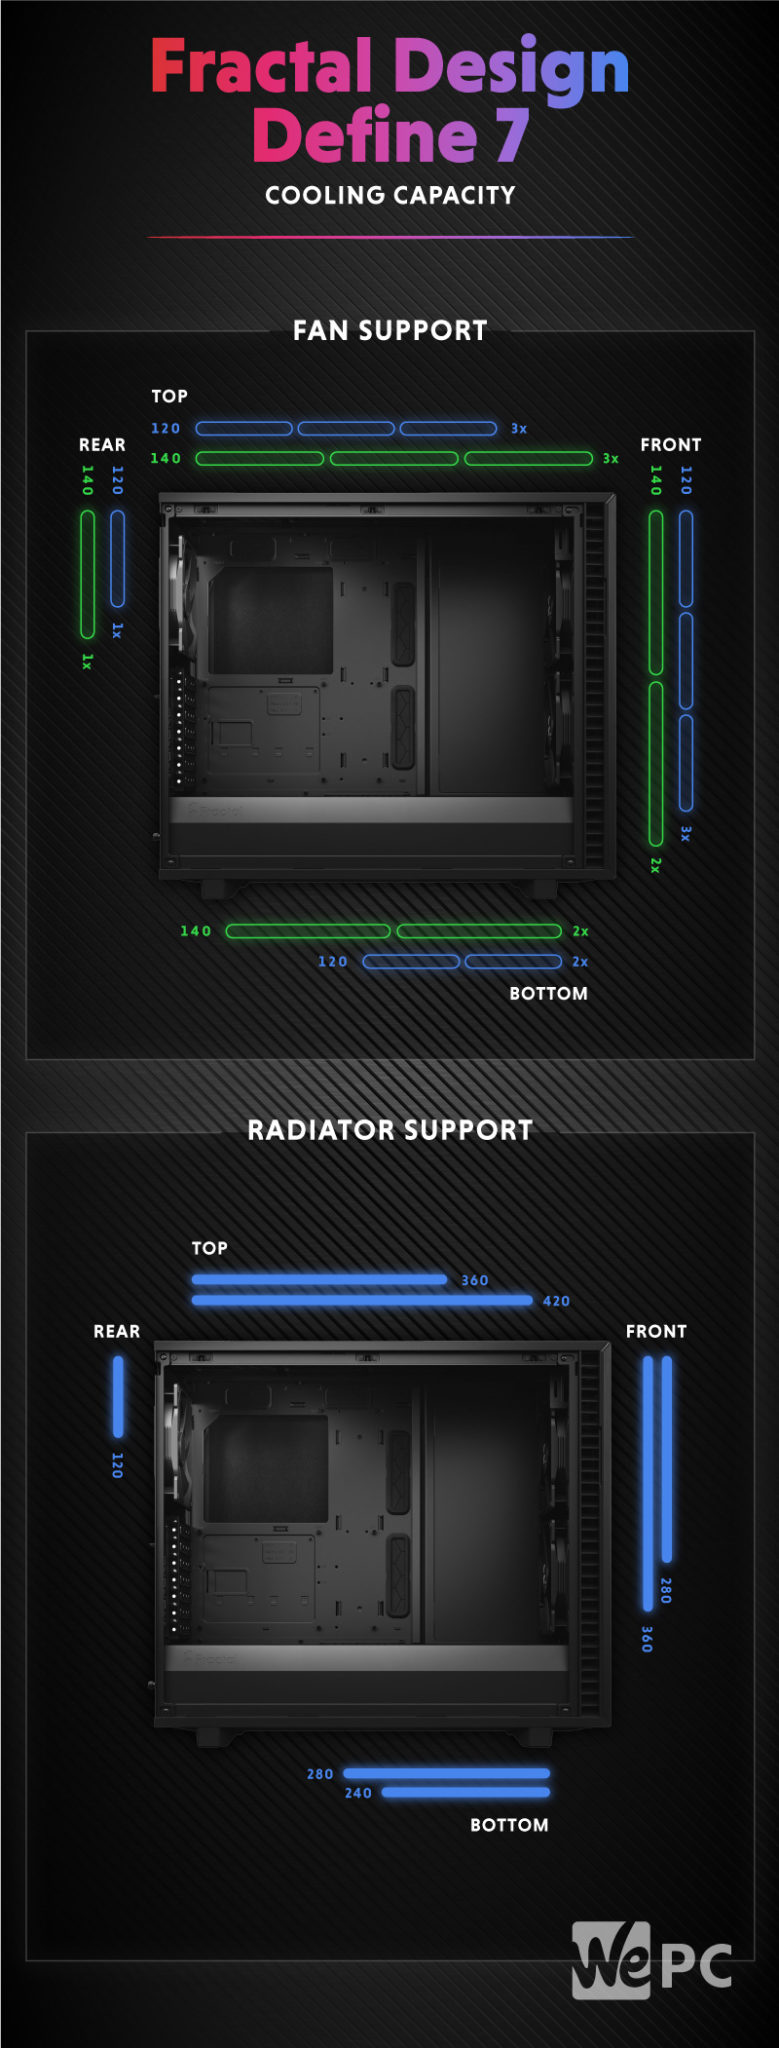 Fractal Design Define 7 Cooling Capacity